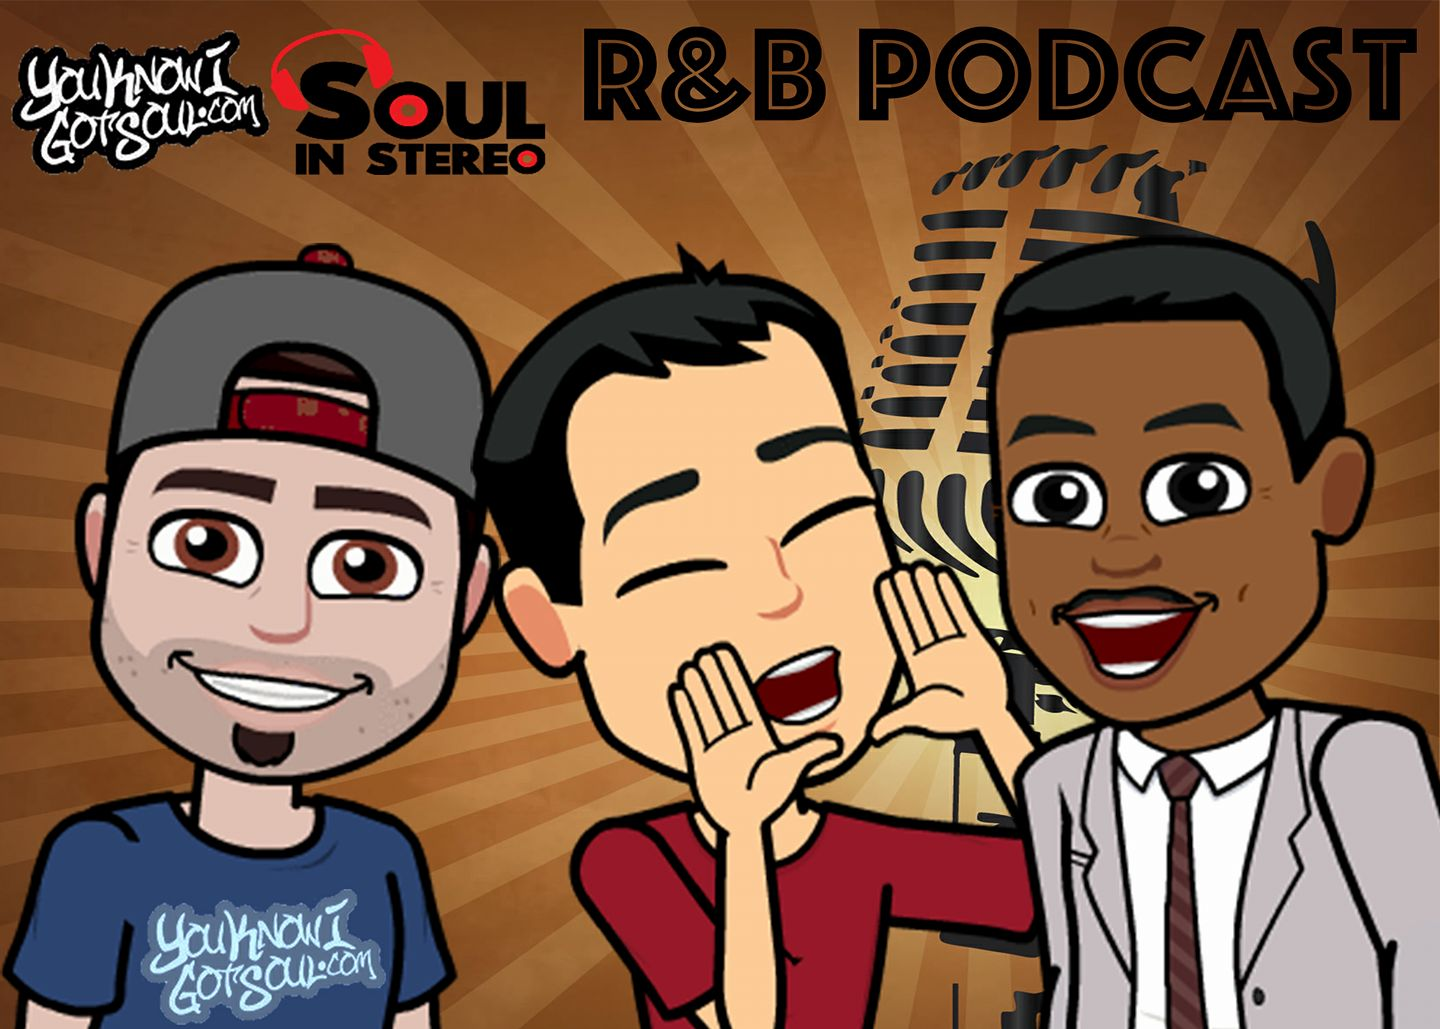 R&B Podcast